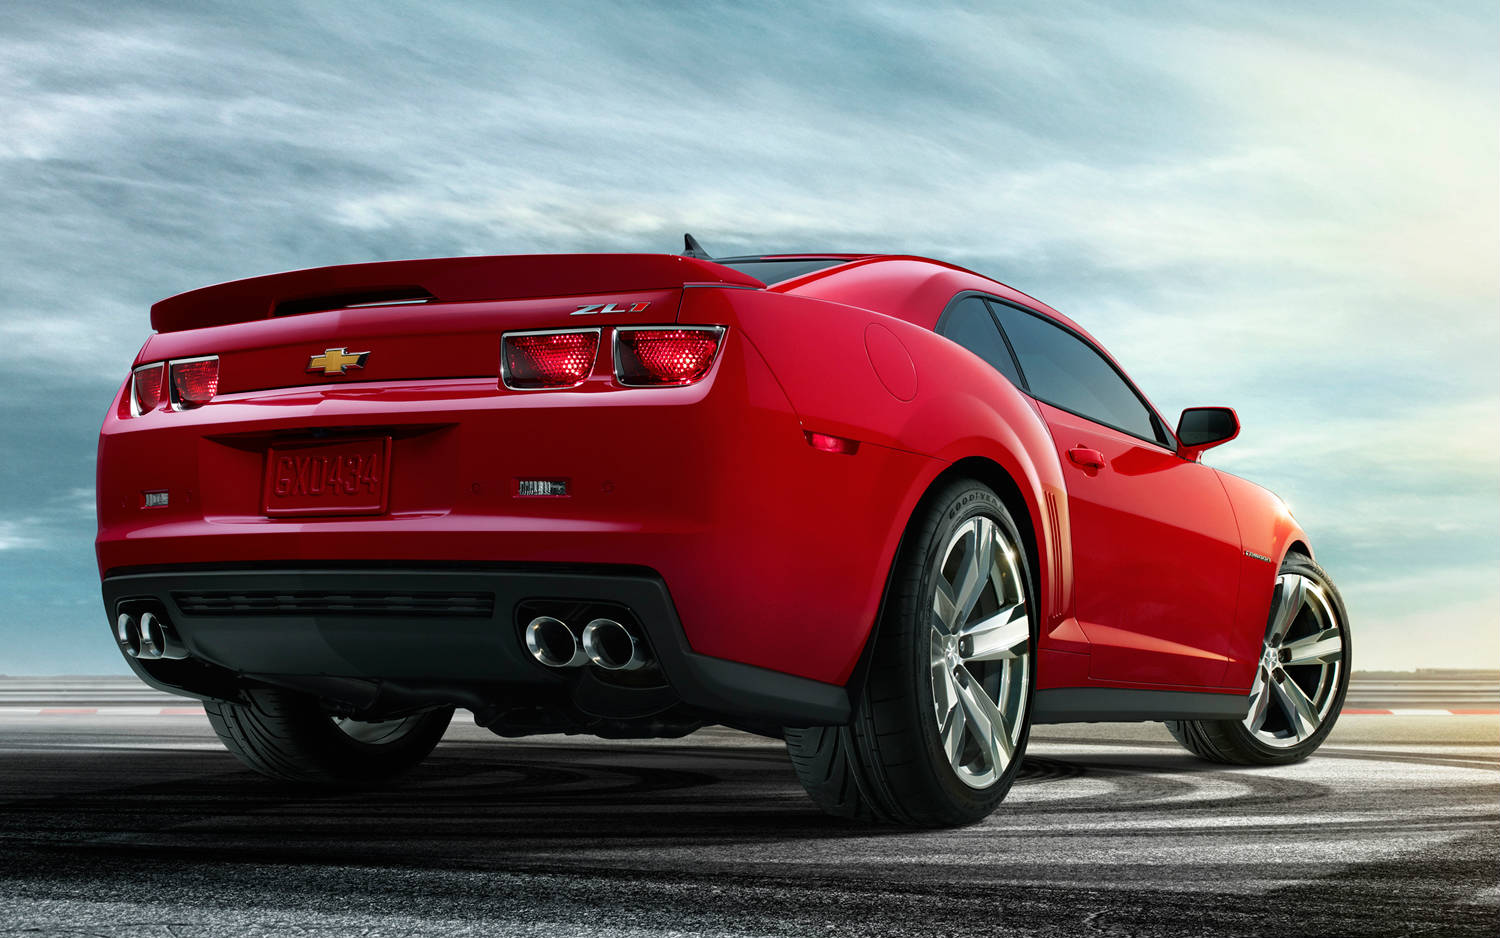 2012 Chevrolet Camaro ZL1! (Top 10 American Muscle Cars) VIDEO ...